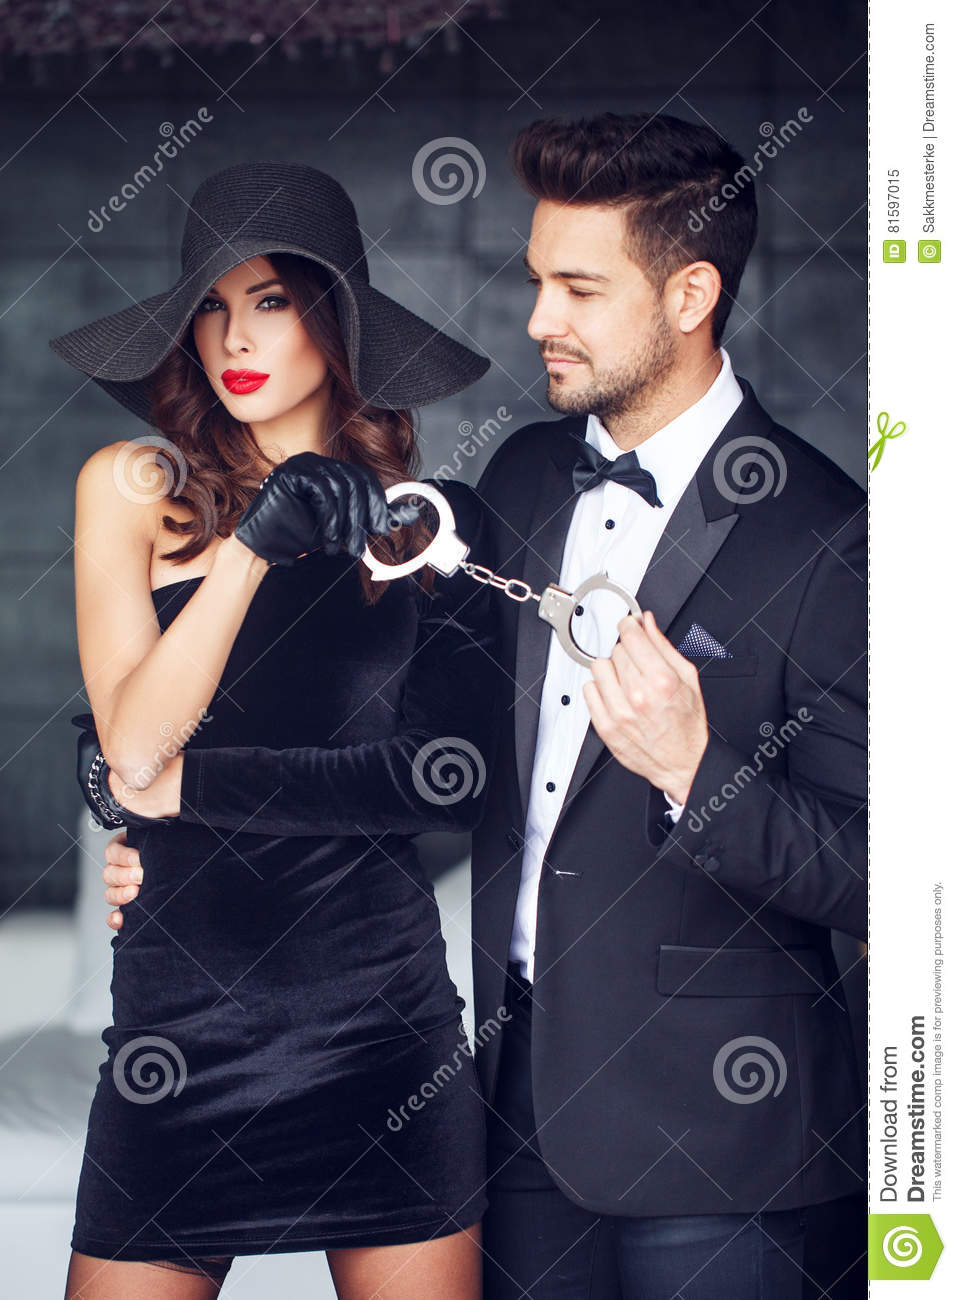 dominatrix woman holding on handcuffs young macho lover in